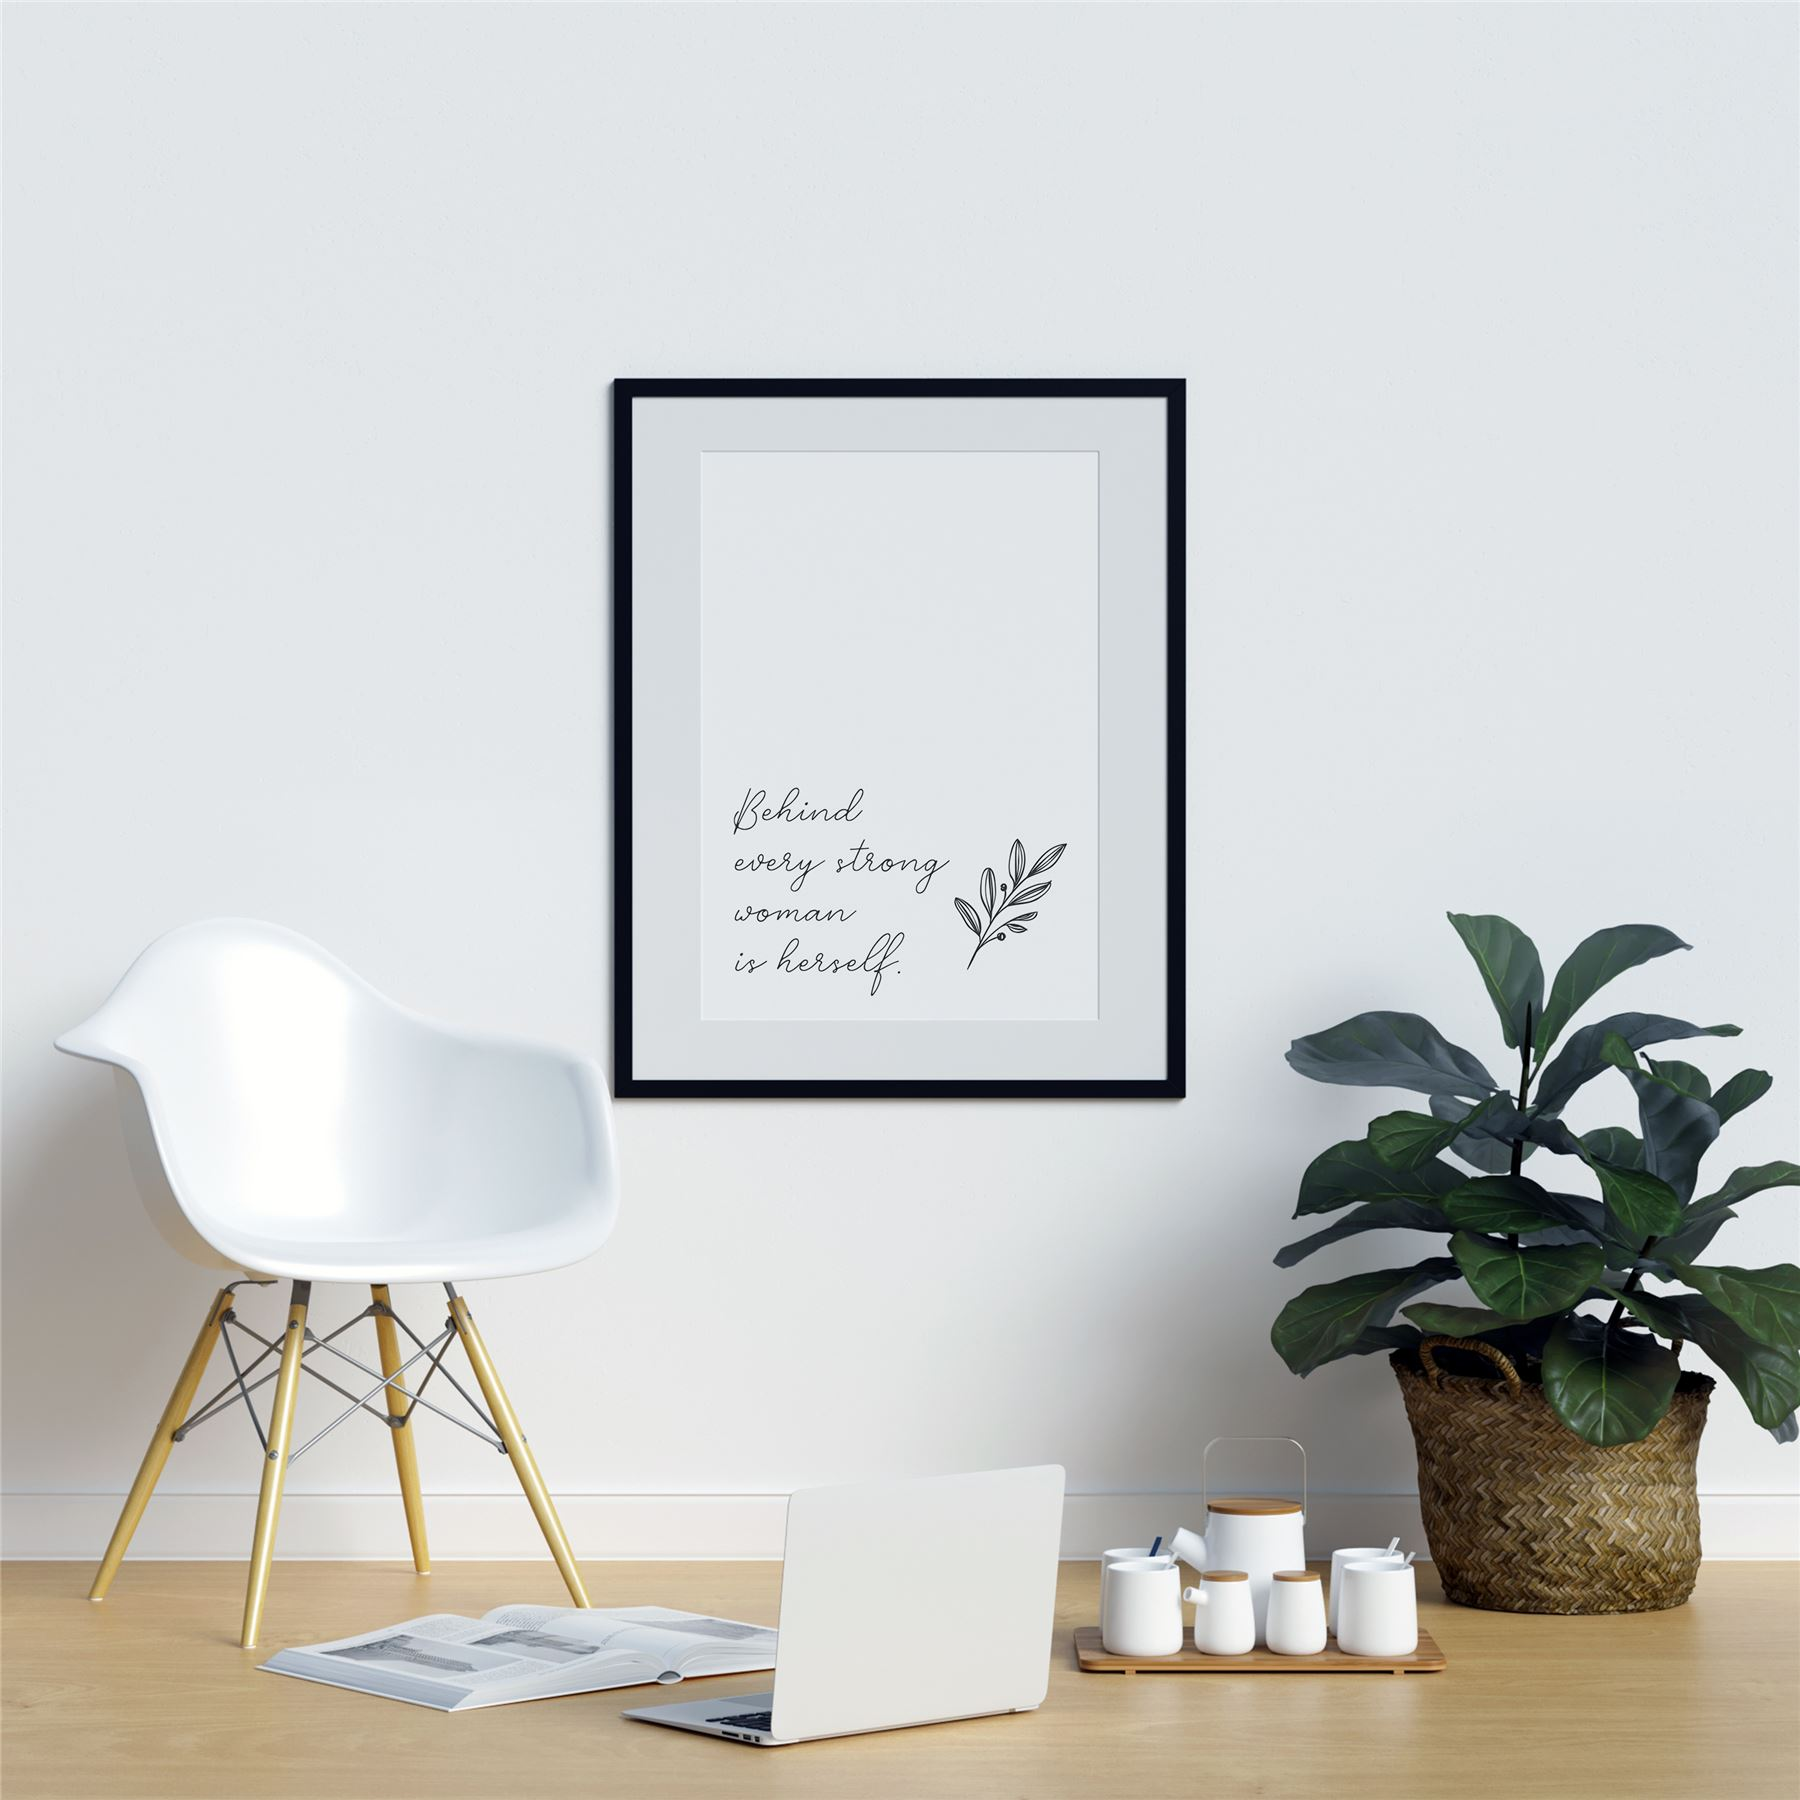 Behind Every Strong Woman Is Herself Motivation Wall Art Home Wall Art Print